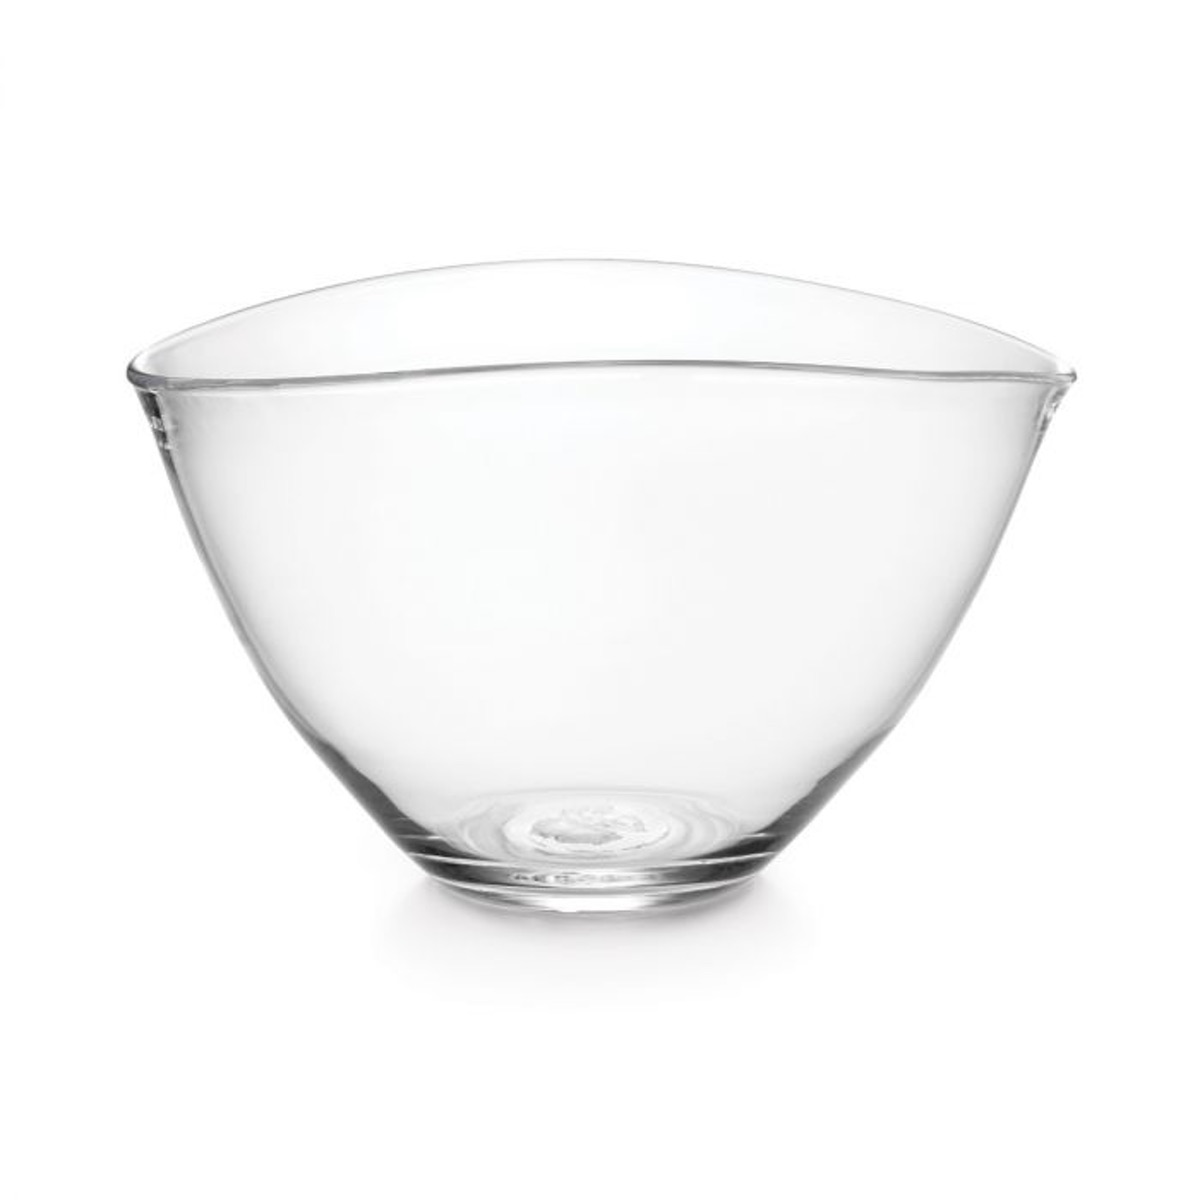 Barr Serving Bowl